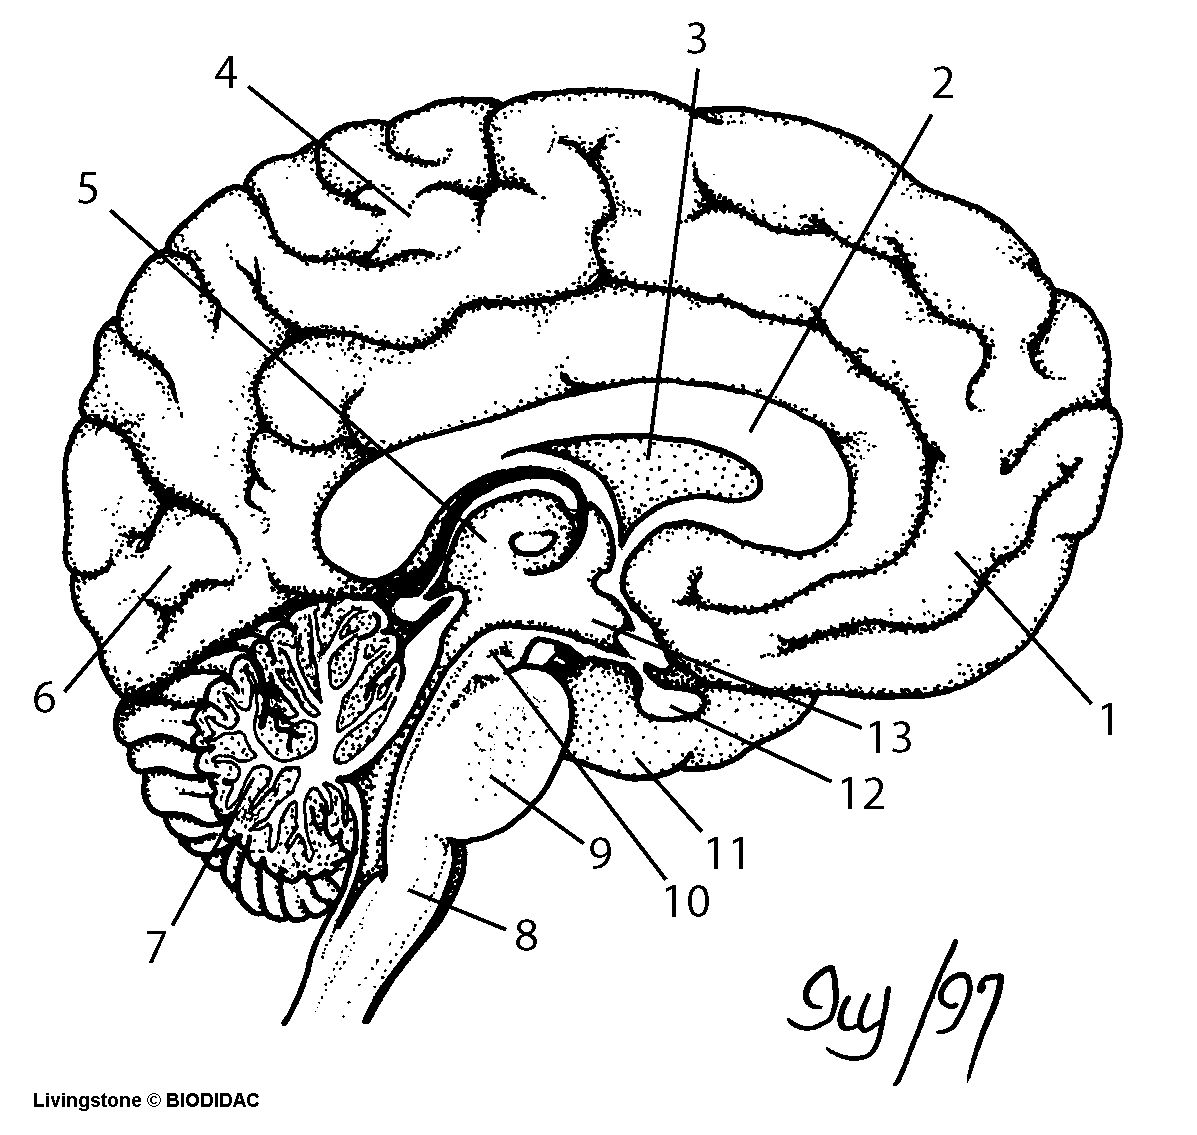 Drawn brains unlabeled lateral Brain Anatomy Of With Organ